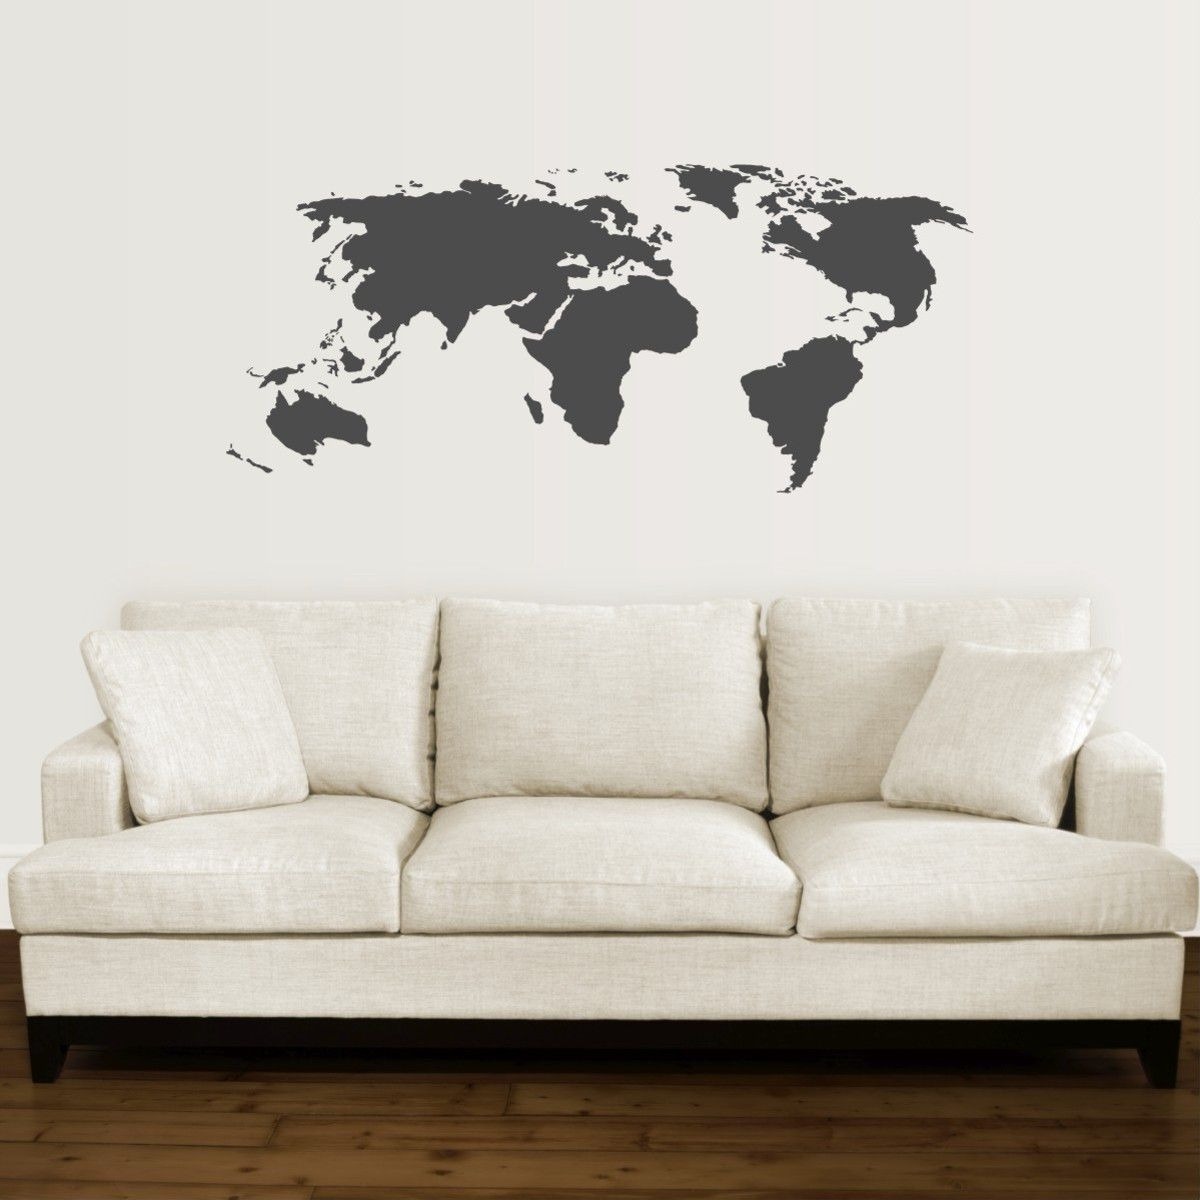 Trendy Vinyl Wall Art World Map With Bedight Wall Art Bedight World Map Vinyl Wall Art (View 15 of 15)